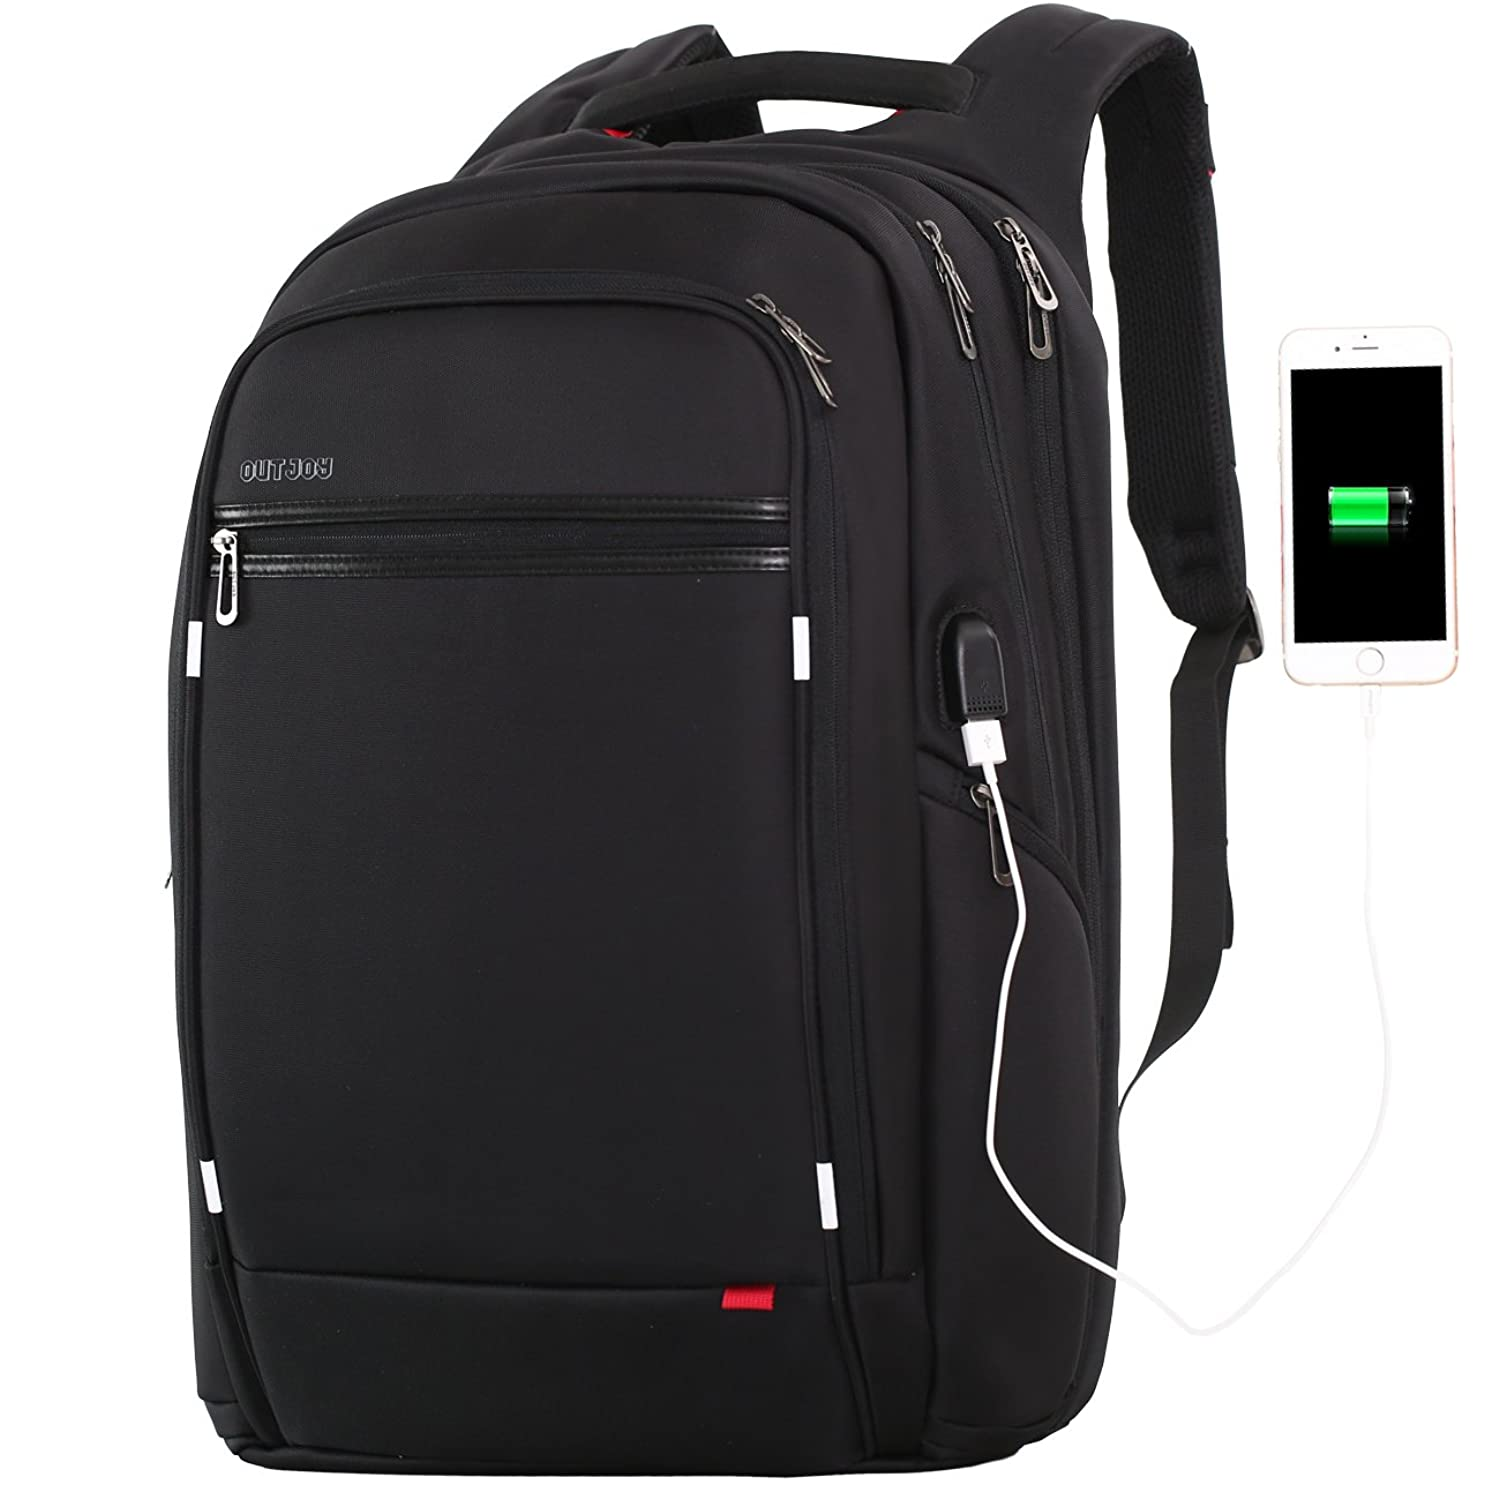 17.3 18 inch Laptop Backpack for Men,Water Resistant Polyester Backpack with USB Charging Port,Large Bookbag College Backpack Travel bag Black Business Backpack fit 15.6 17.3 laptops by Outjoy